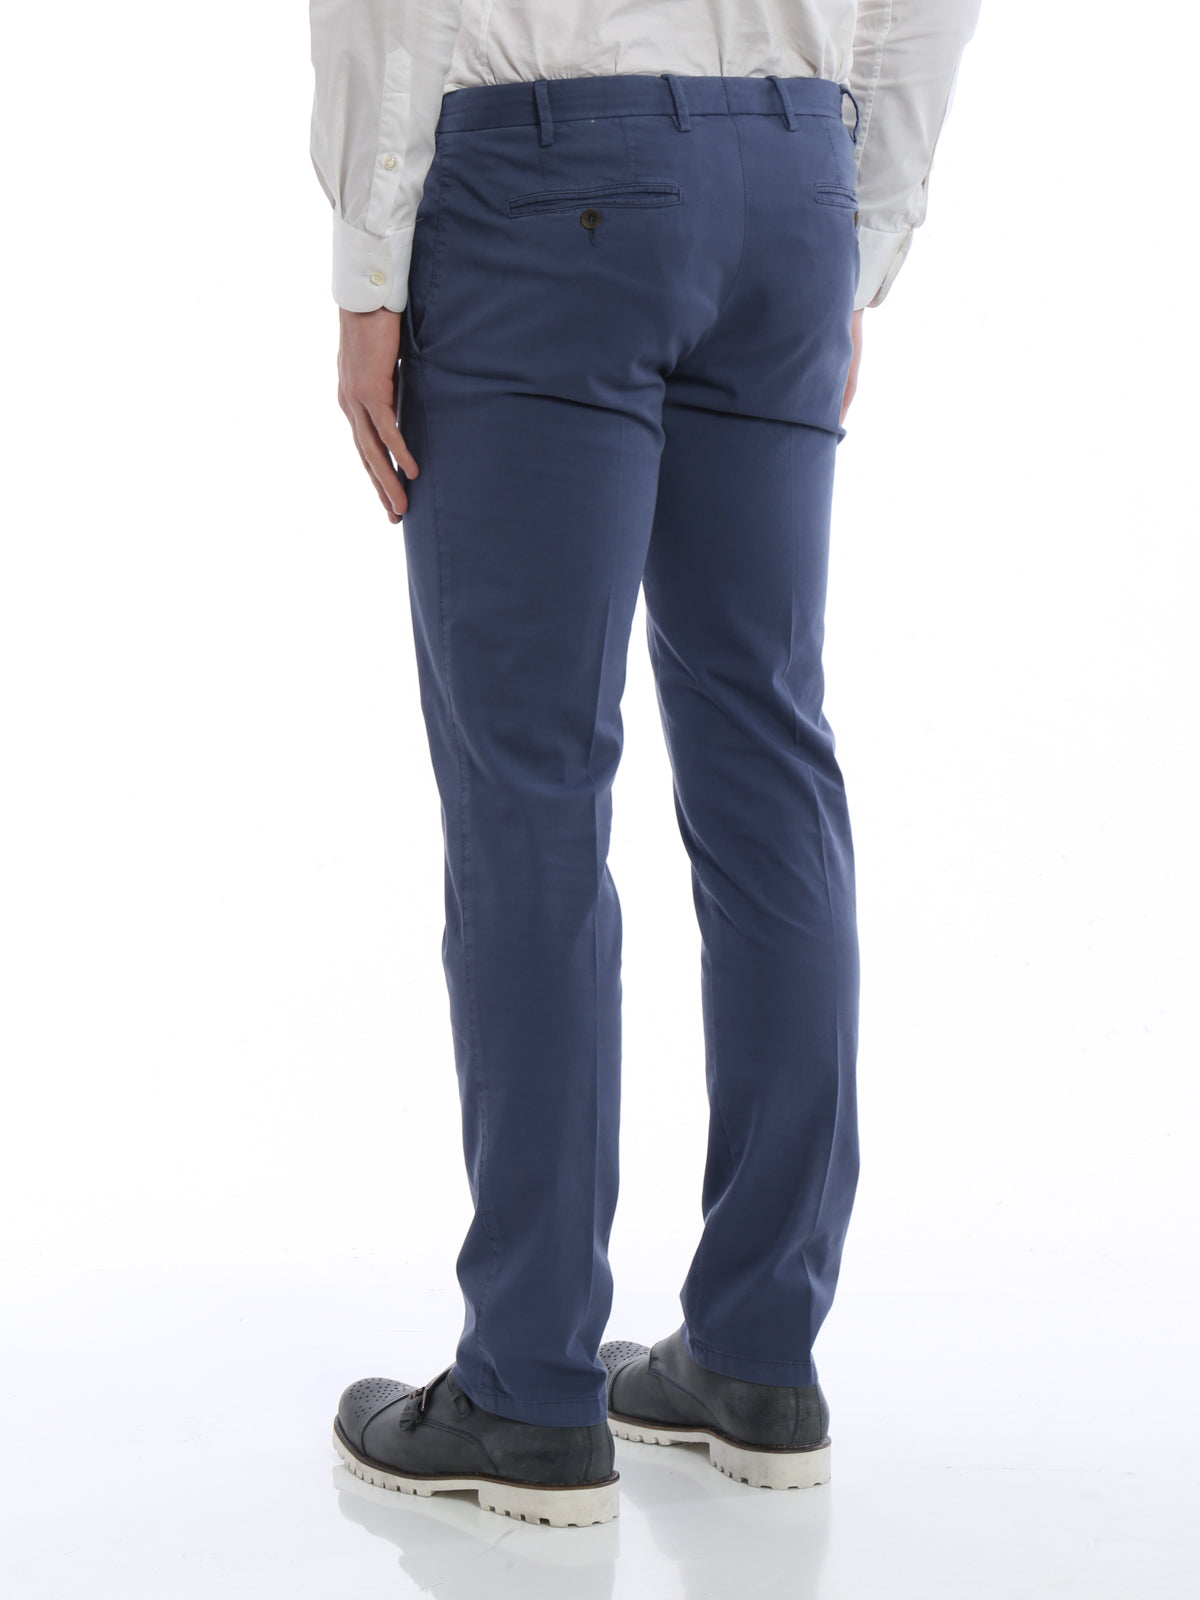 Canali - Cotton Stretch Chinos in Blue